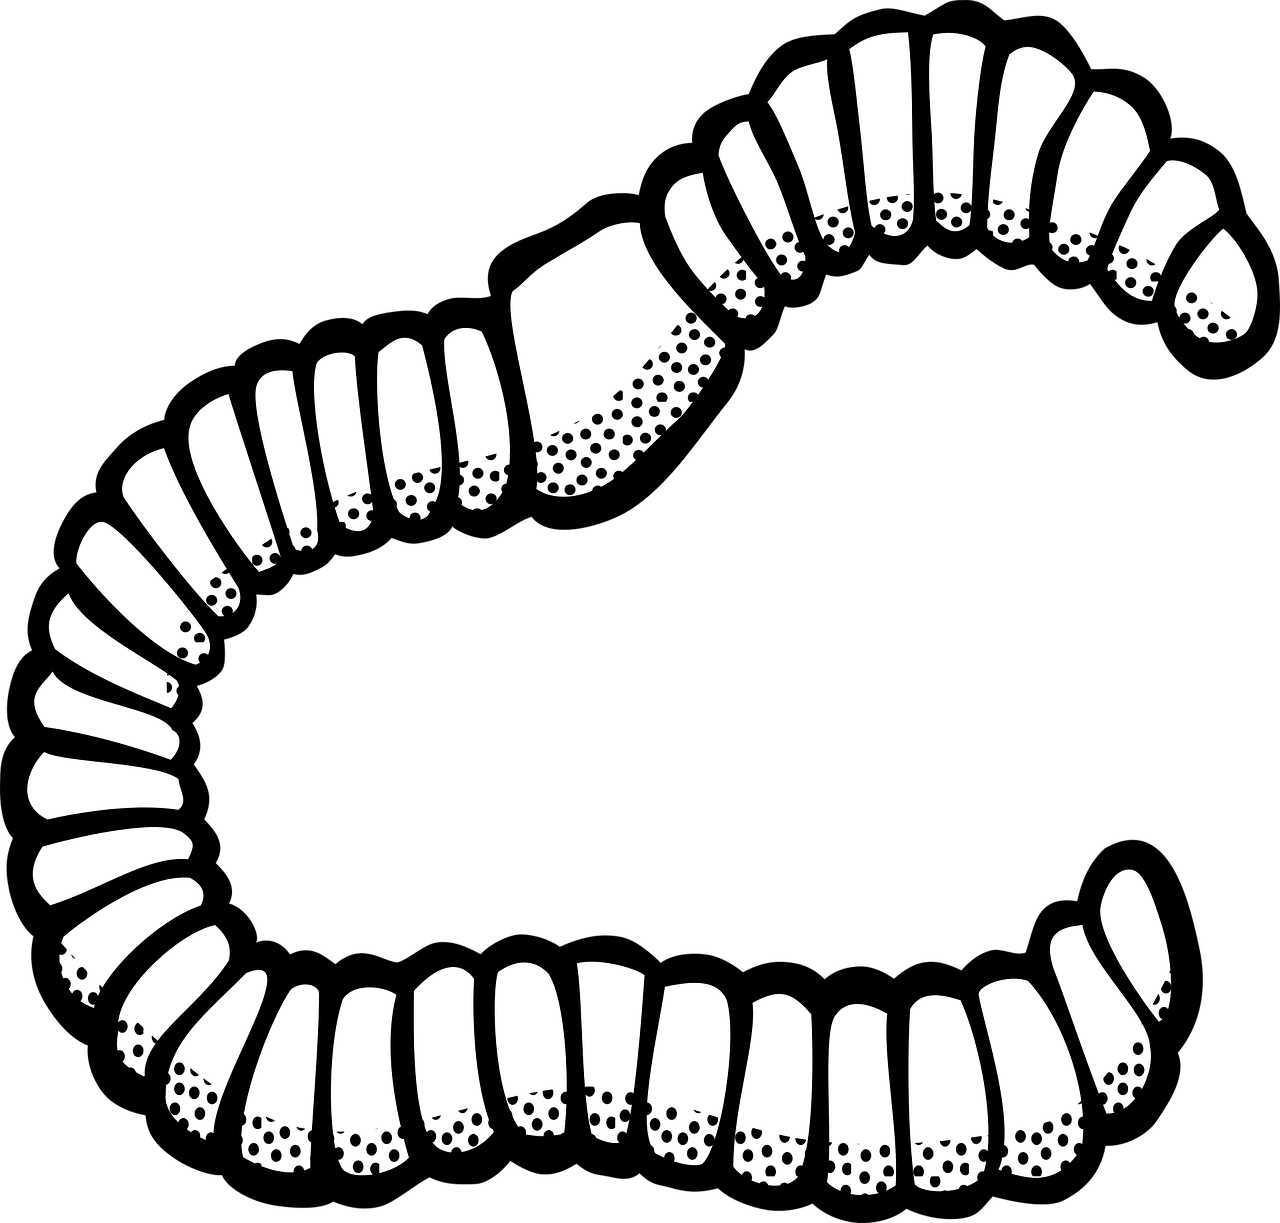 Animal insect png image. Insects clipart worm